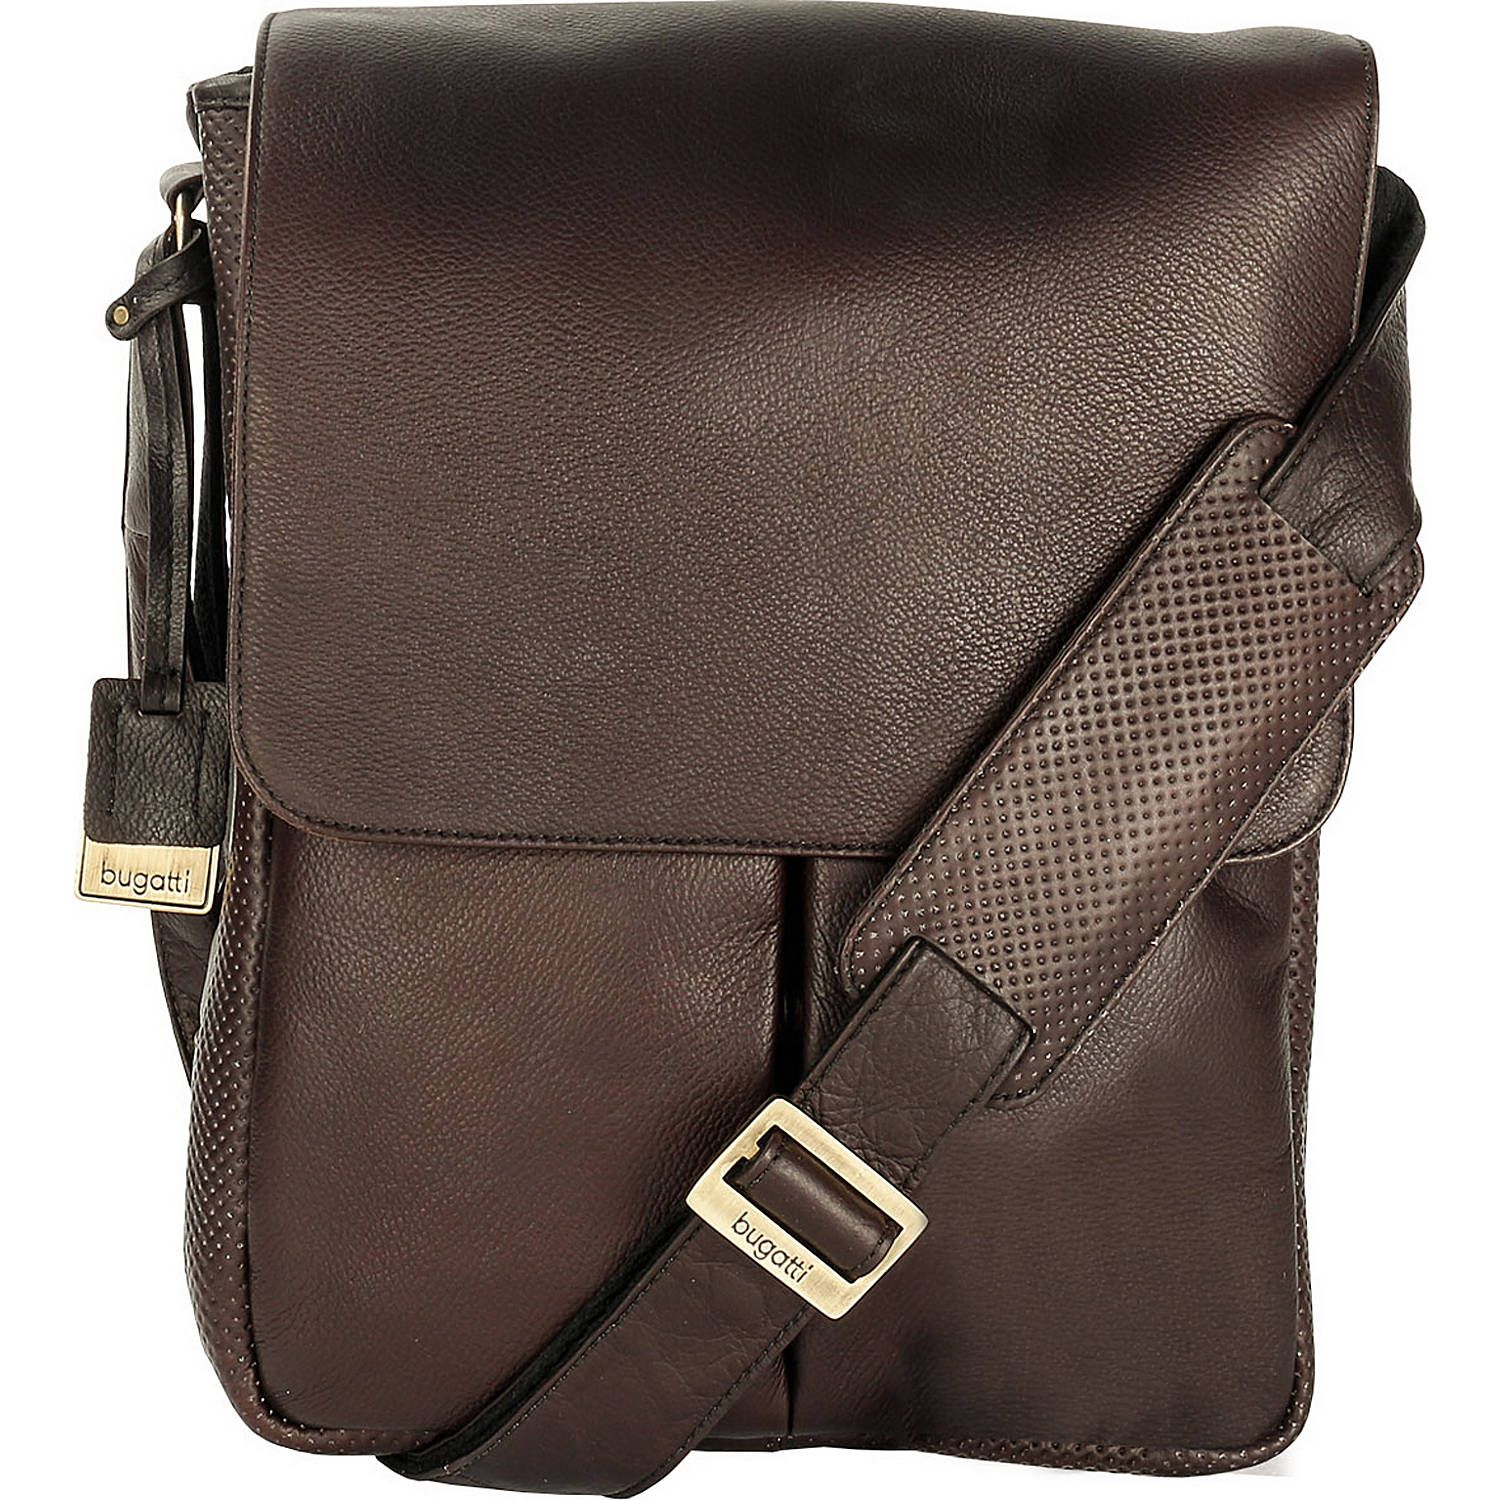 Hidesign Seattle Unisex Leather Crossbody Messenger Black